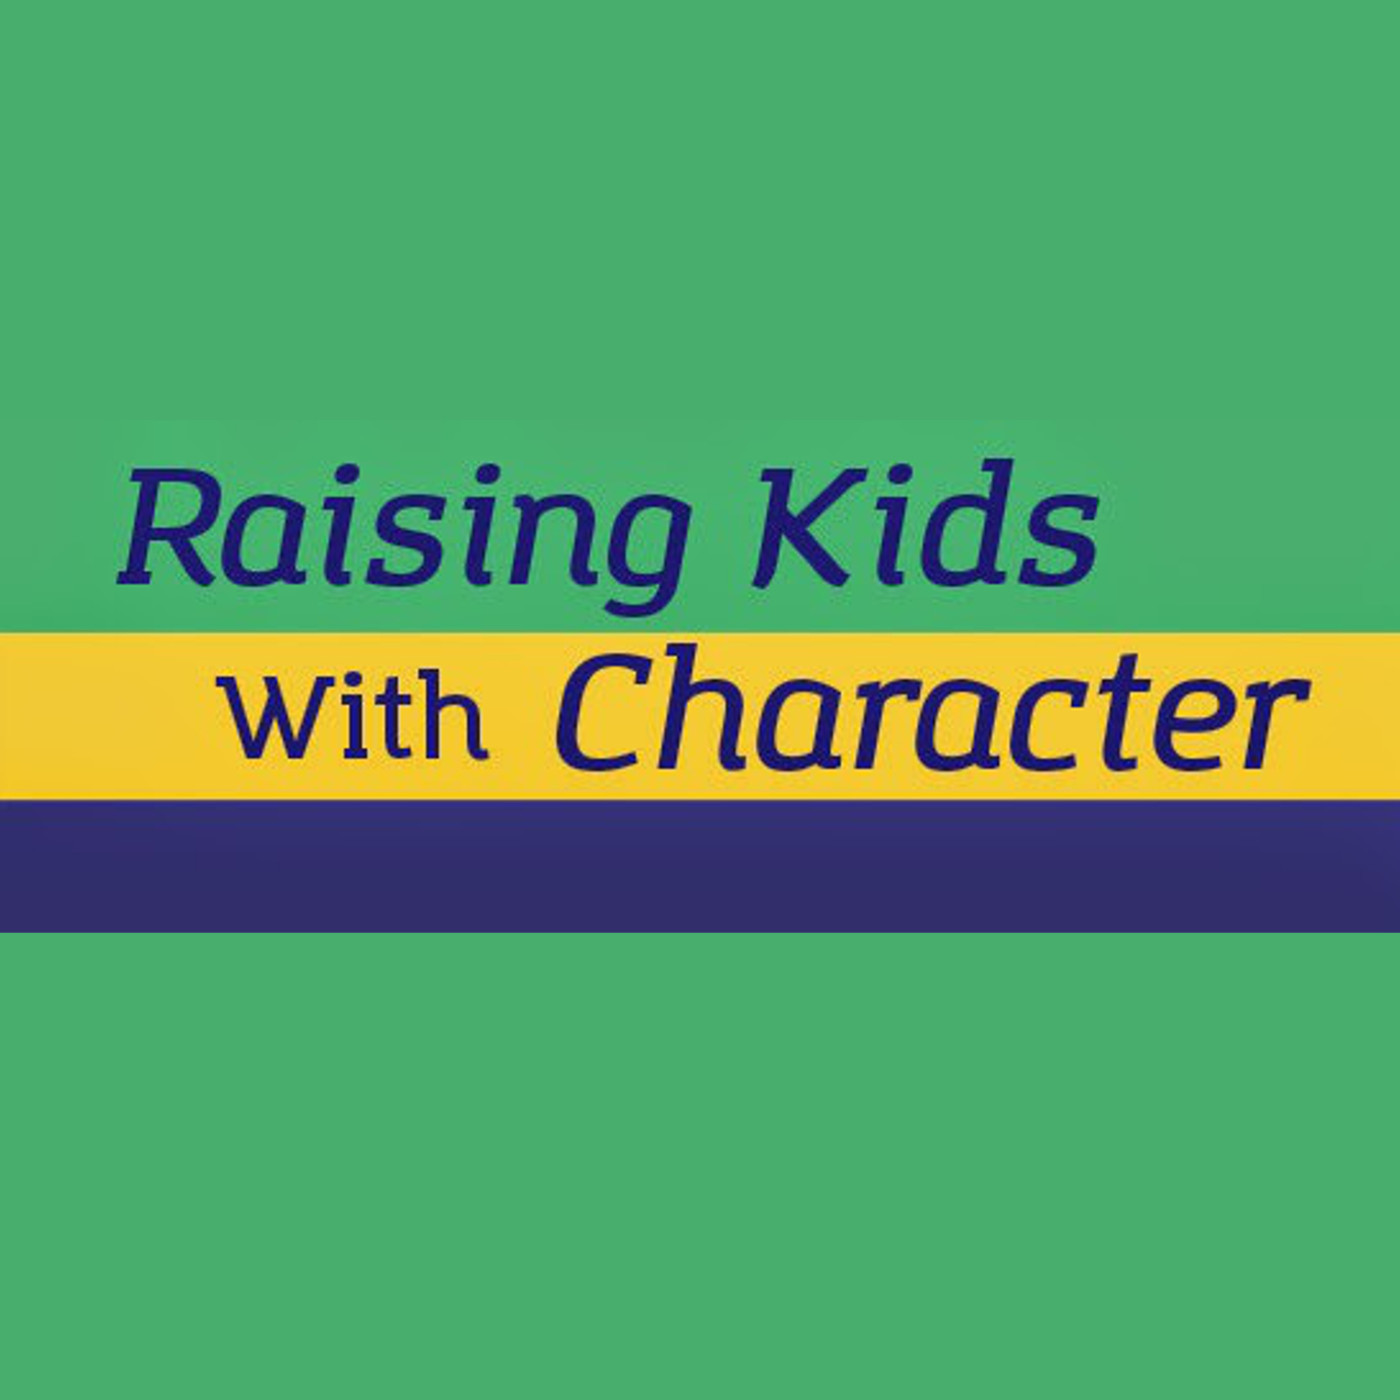 Raising Kids With Character